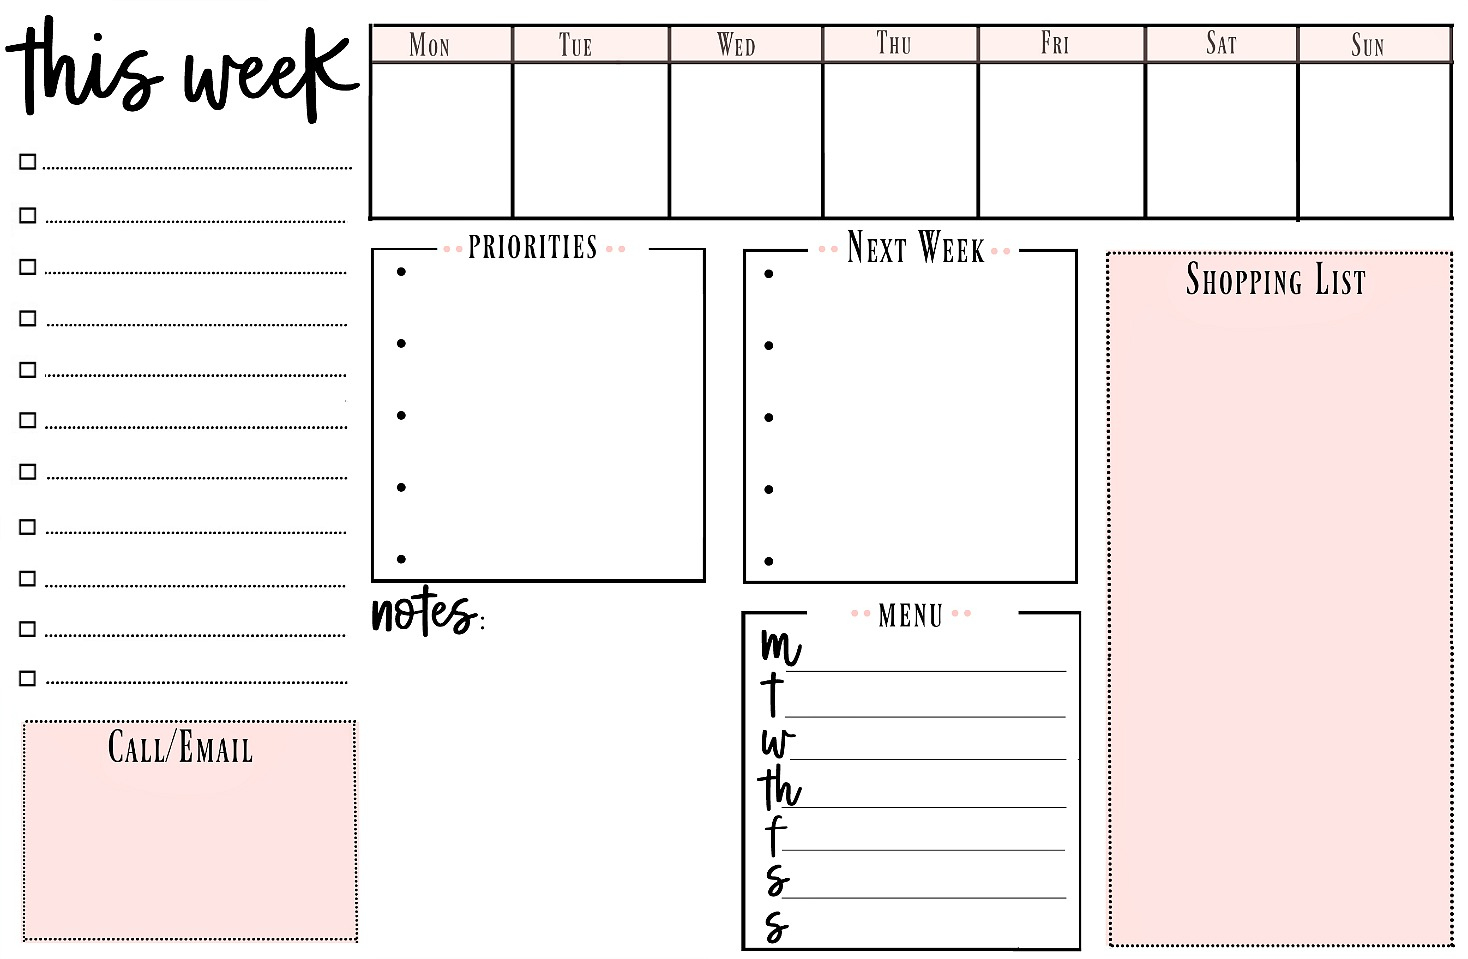 Weekly Printable To Do List For Getting Organized - Weekly To Do List Free Printable